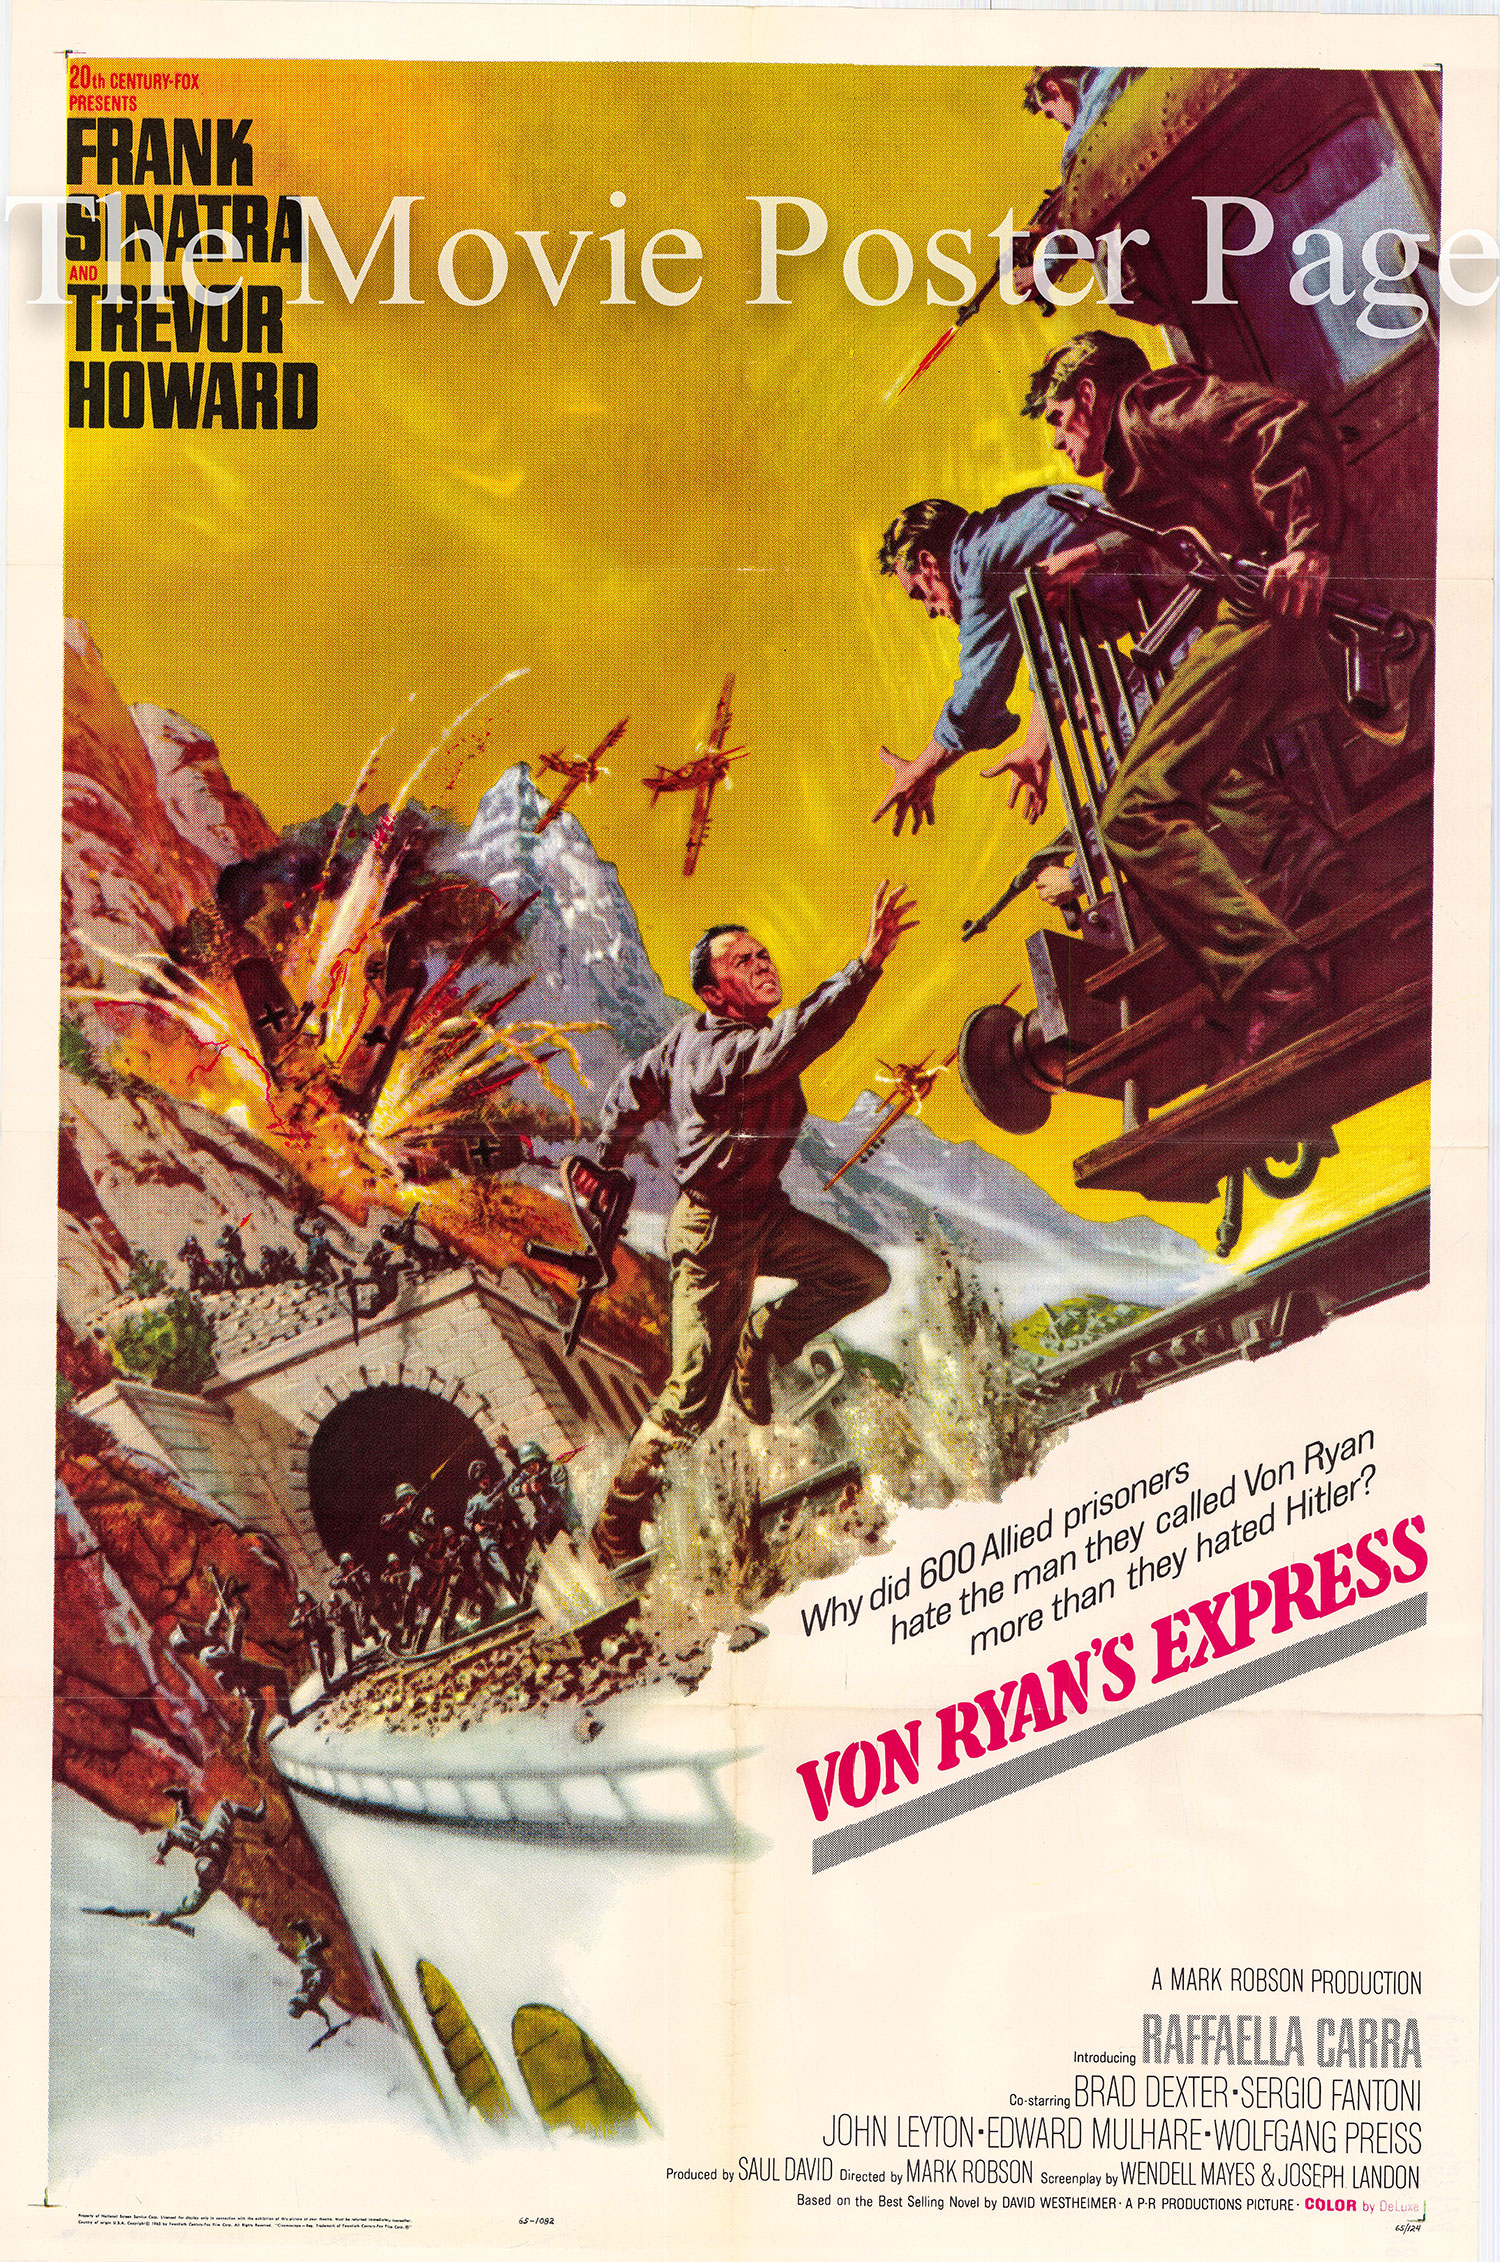 Pictured is a US one-sheet poster for the 1965 Mark Robson film <i>Von Ryan's Express</i> starring Frank Sinatra.